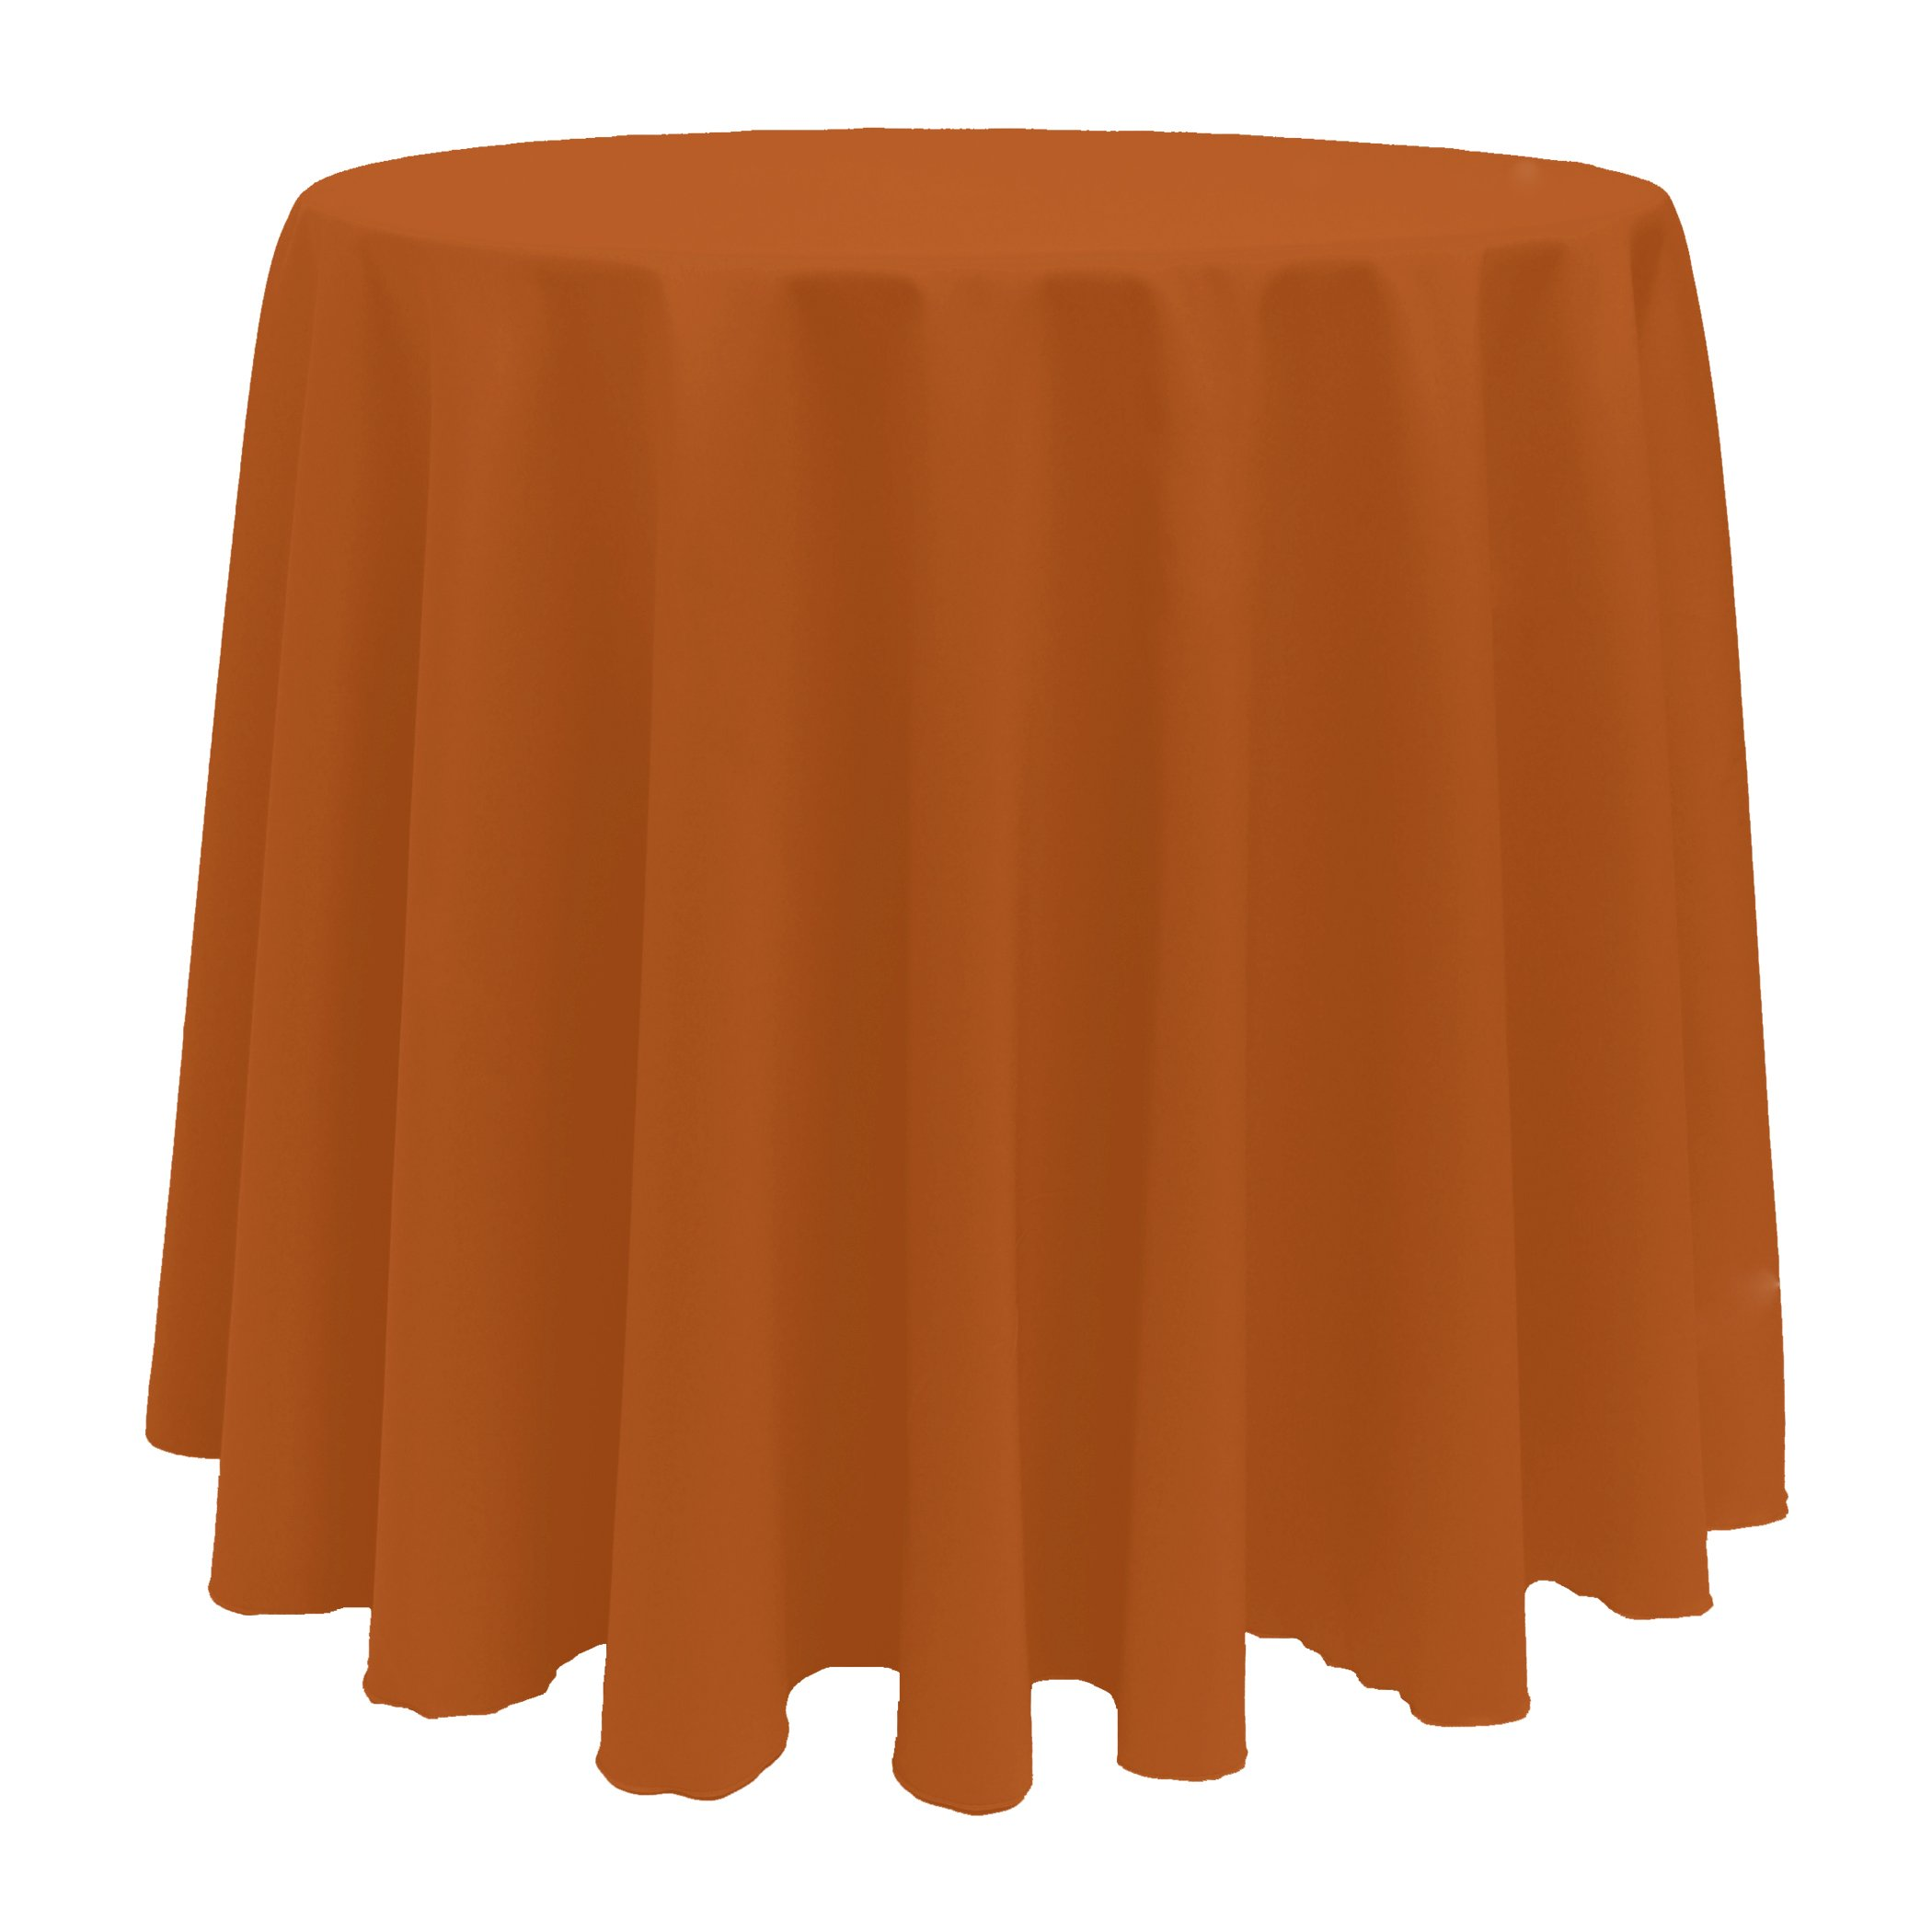 Ultimate Textile (10 Pack) 90-Inch Round Polyester Linen Tablecloth - for Wedding, Restaurant or Banquet use, Burnt Orange